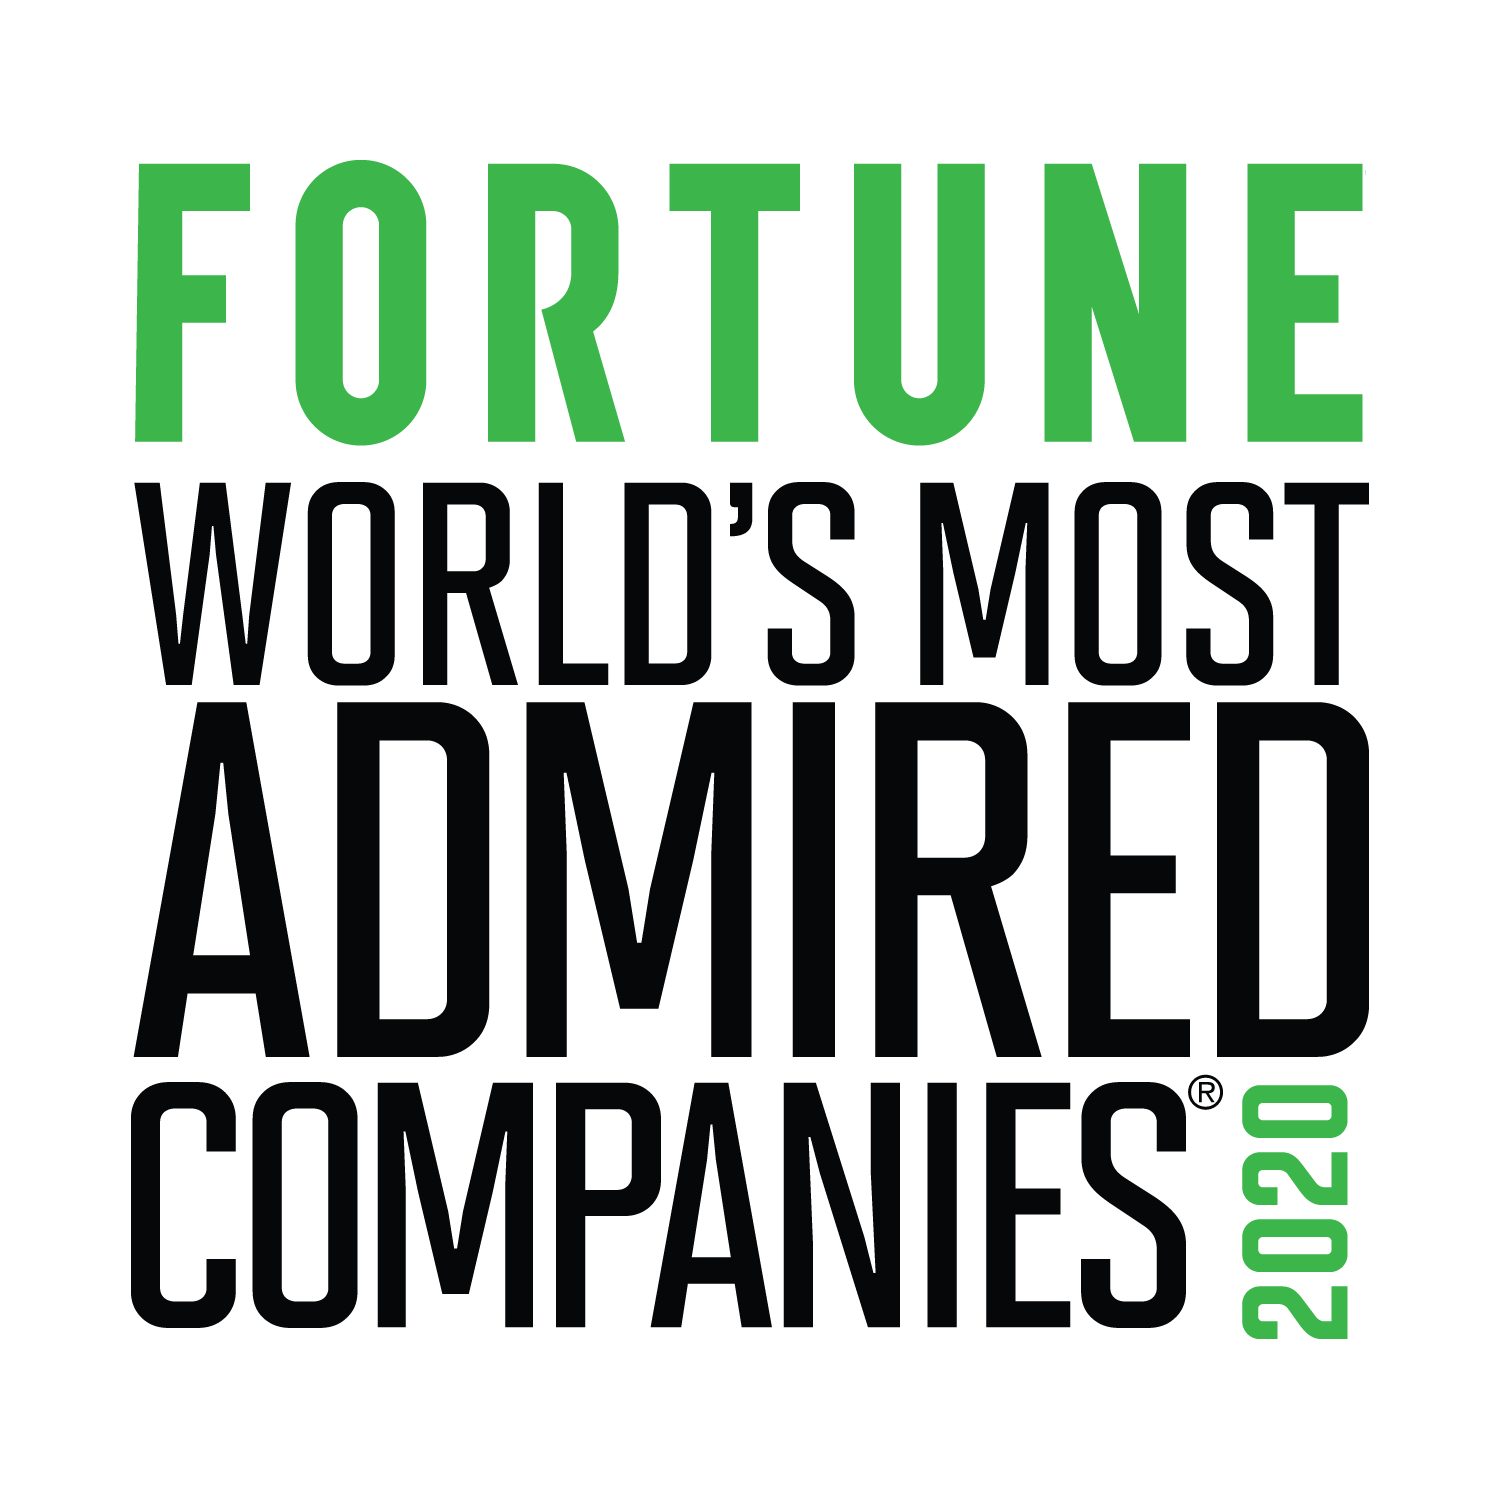 C:\Users\kelvyn_taylor\Documents\Work\Copy\Press Releases\Templates\Fortune Most Admired Companies 2020\Logo\WMAC2020.png